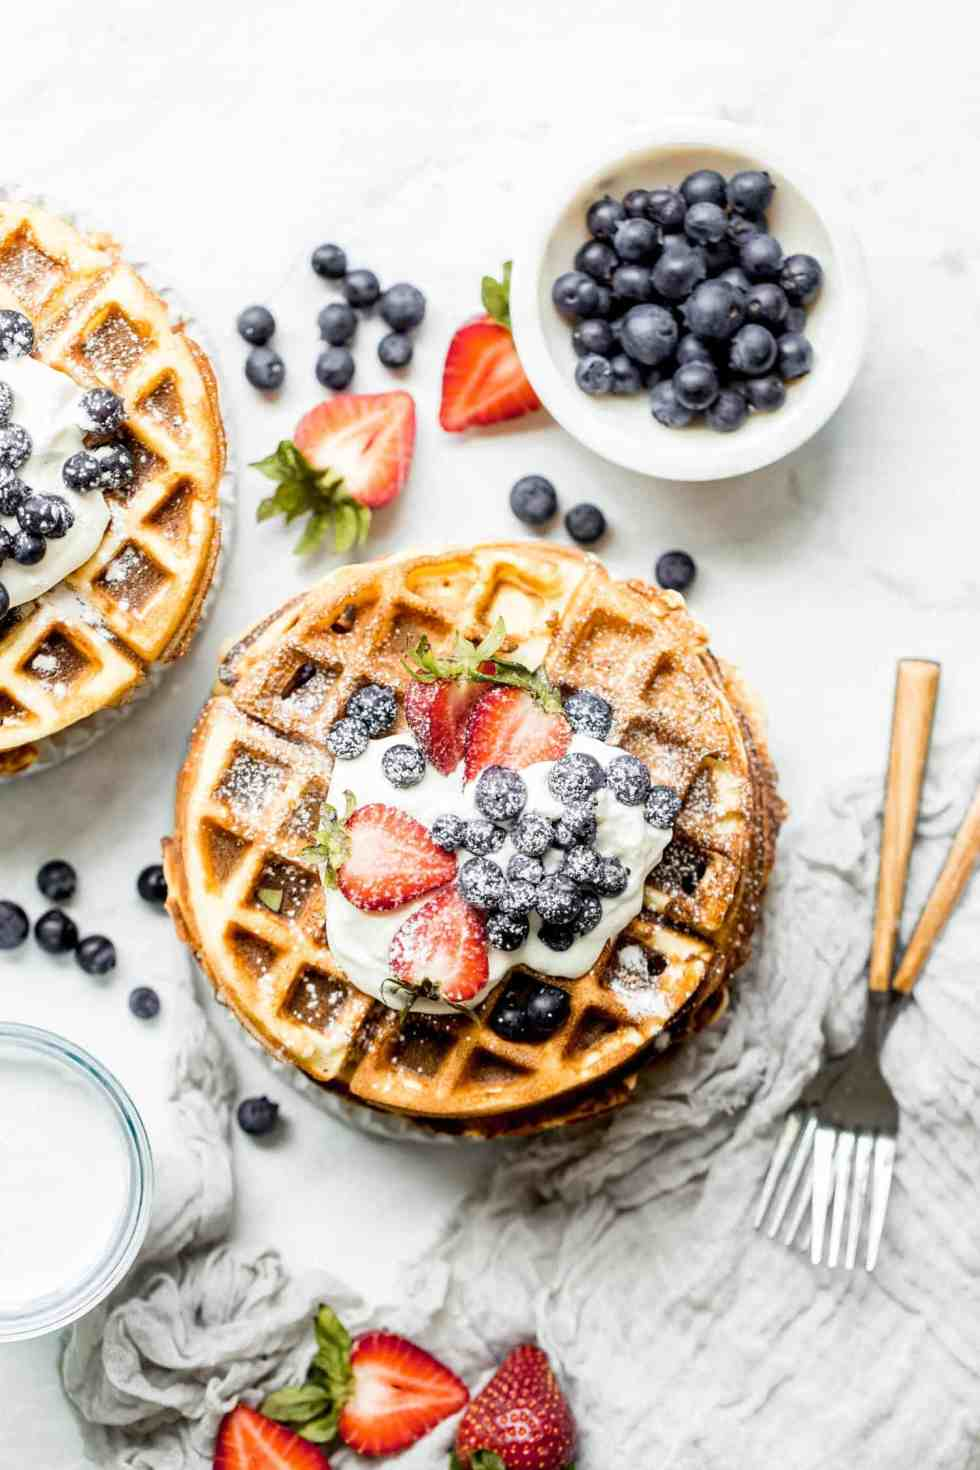 two stacks of paleo waffles on plates with berries